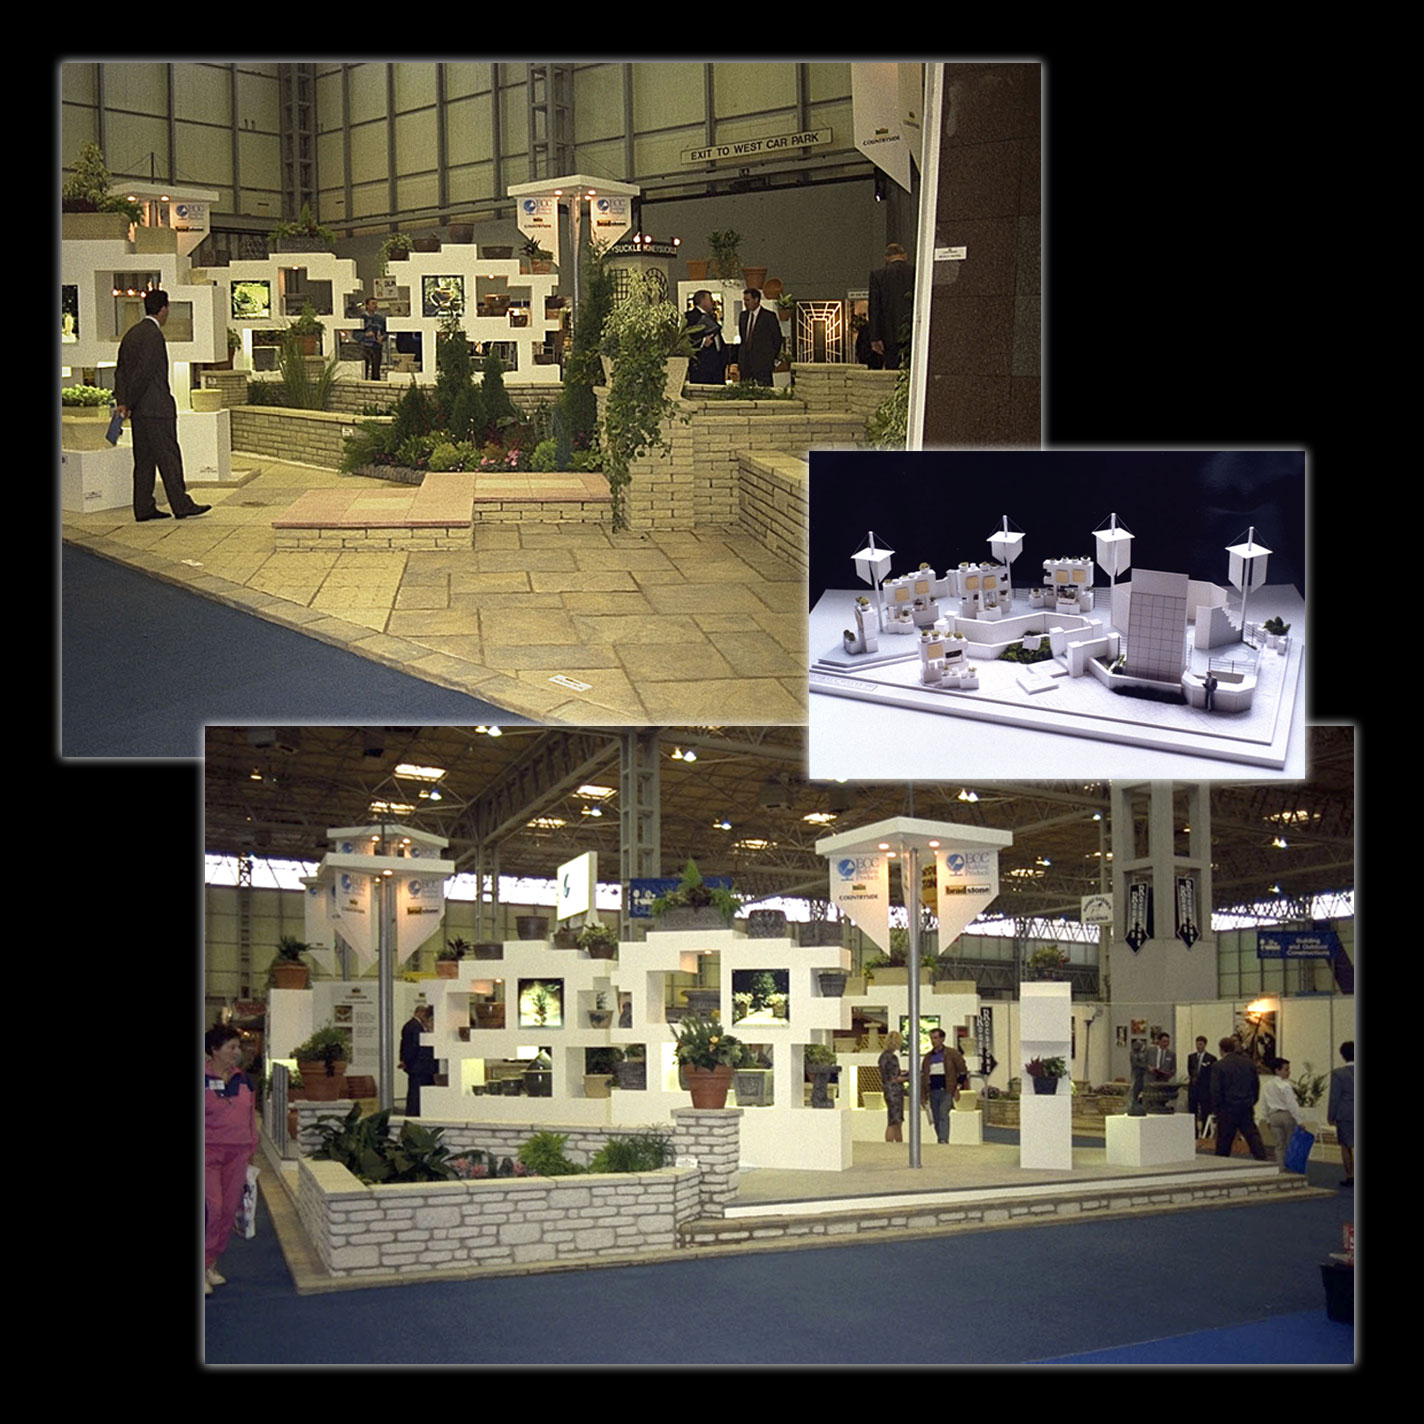 Display - Exhibition Stand for English China Clays - Bradstone Garden Landscaping Products - 20m x 10m - Design, Drawings & Supervise Build at NEC.